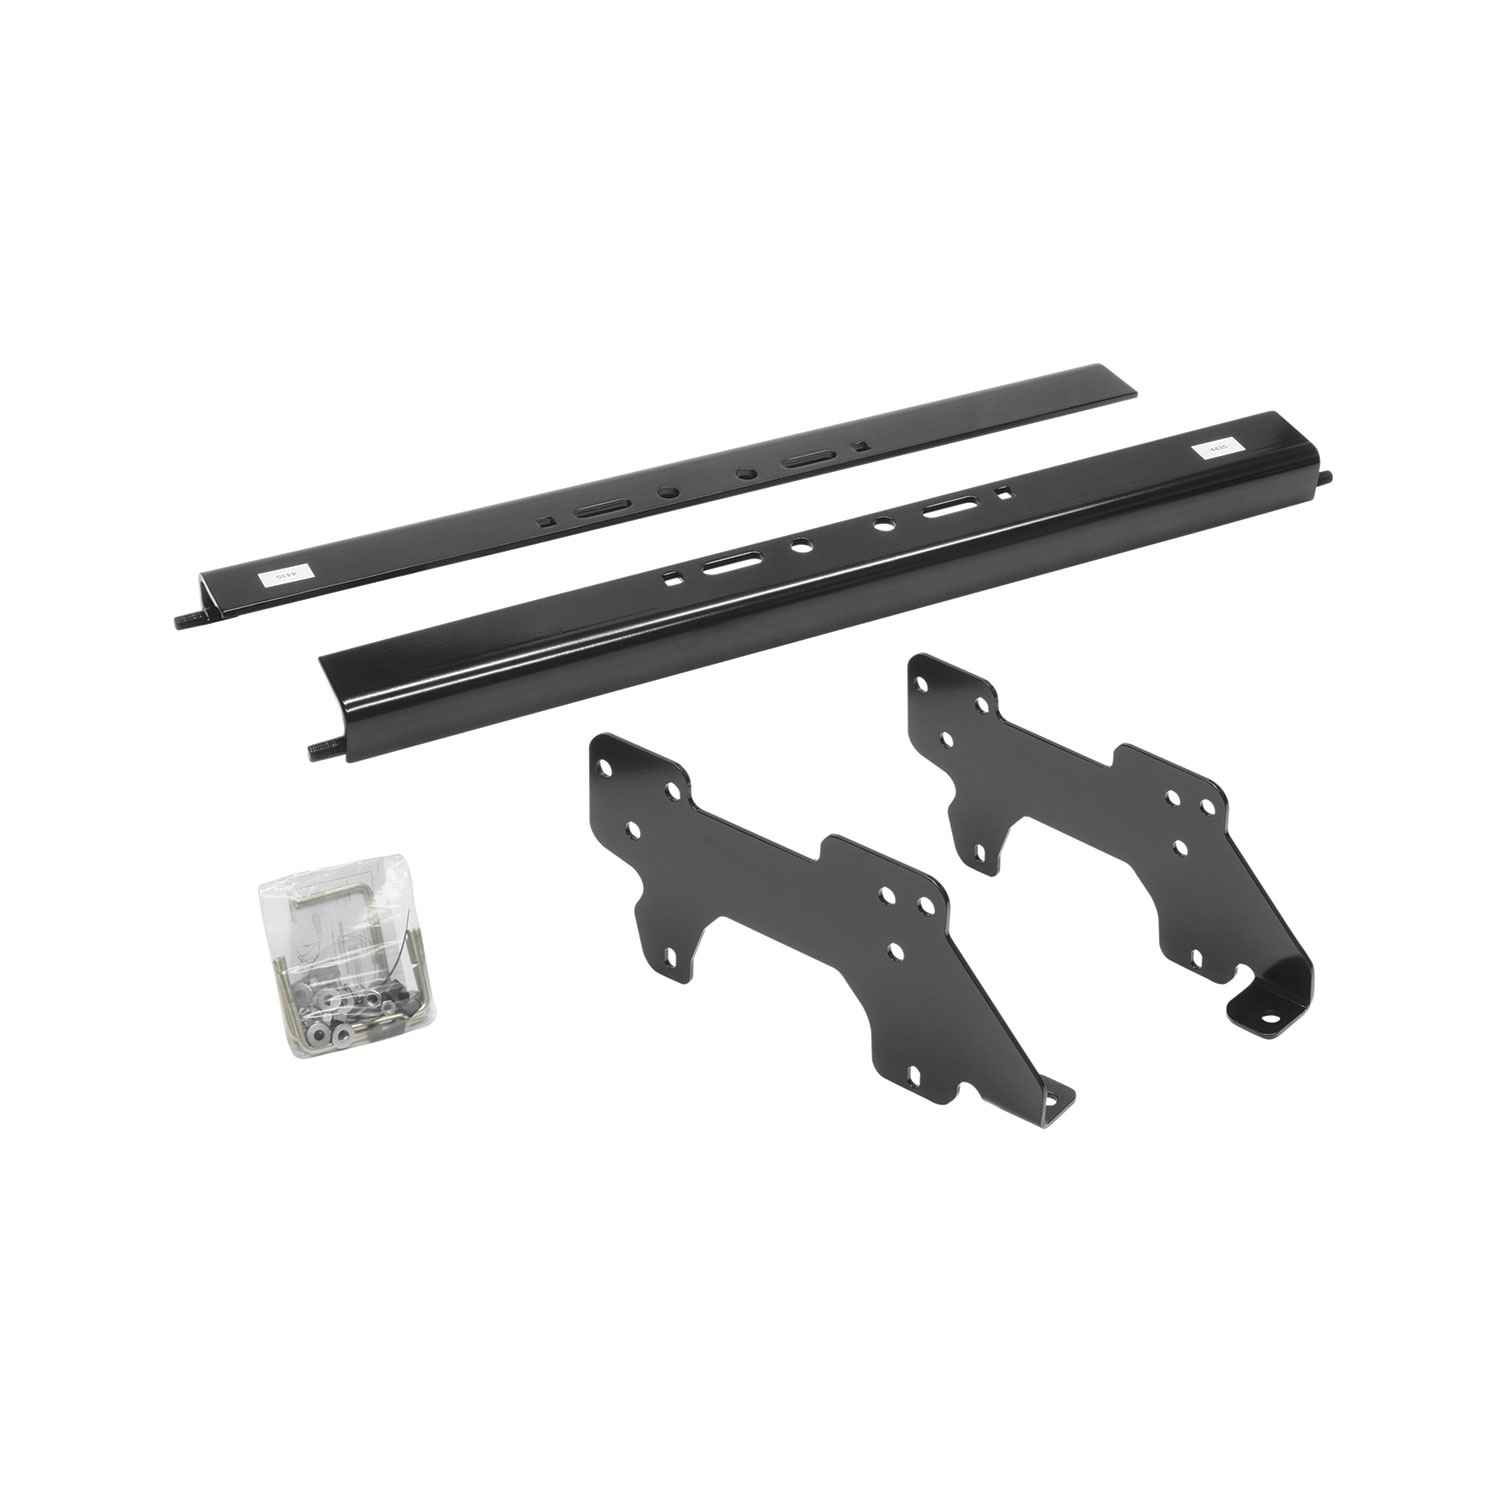 Gooseneck Trailer Hitch Mount Kit